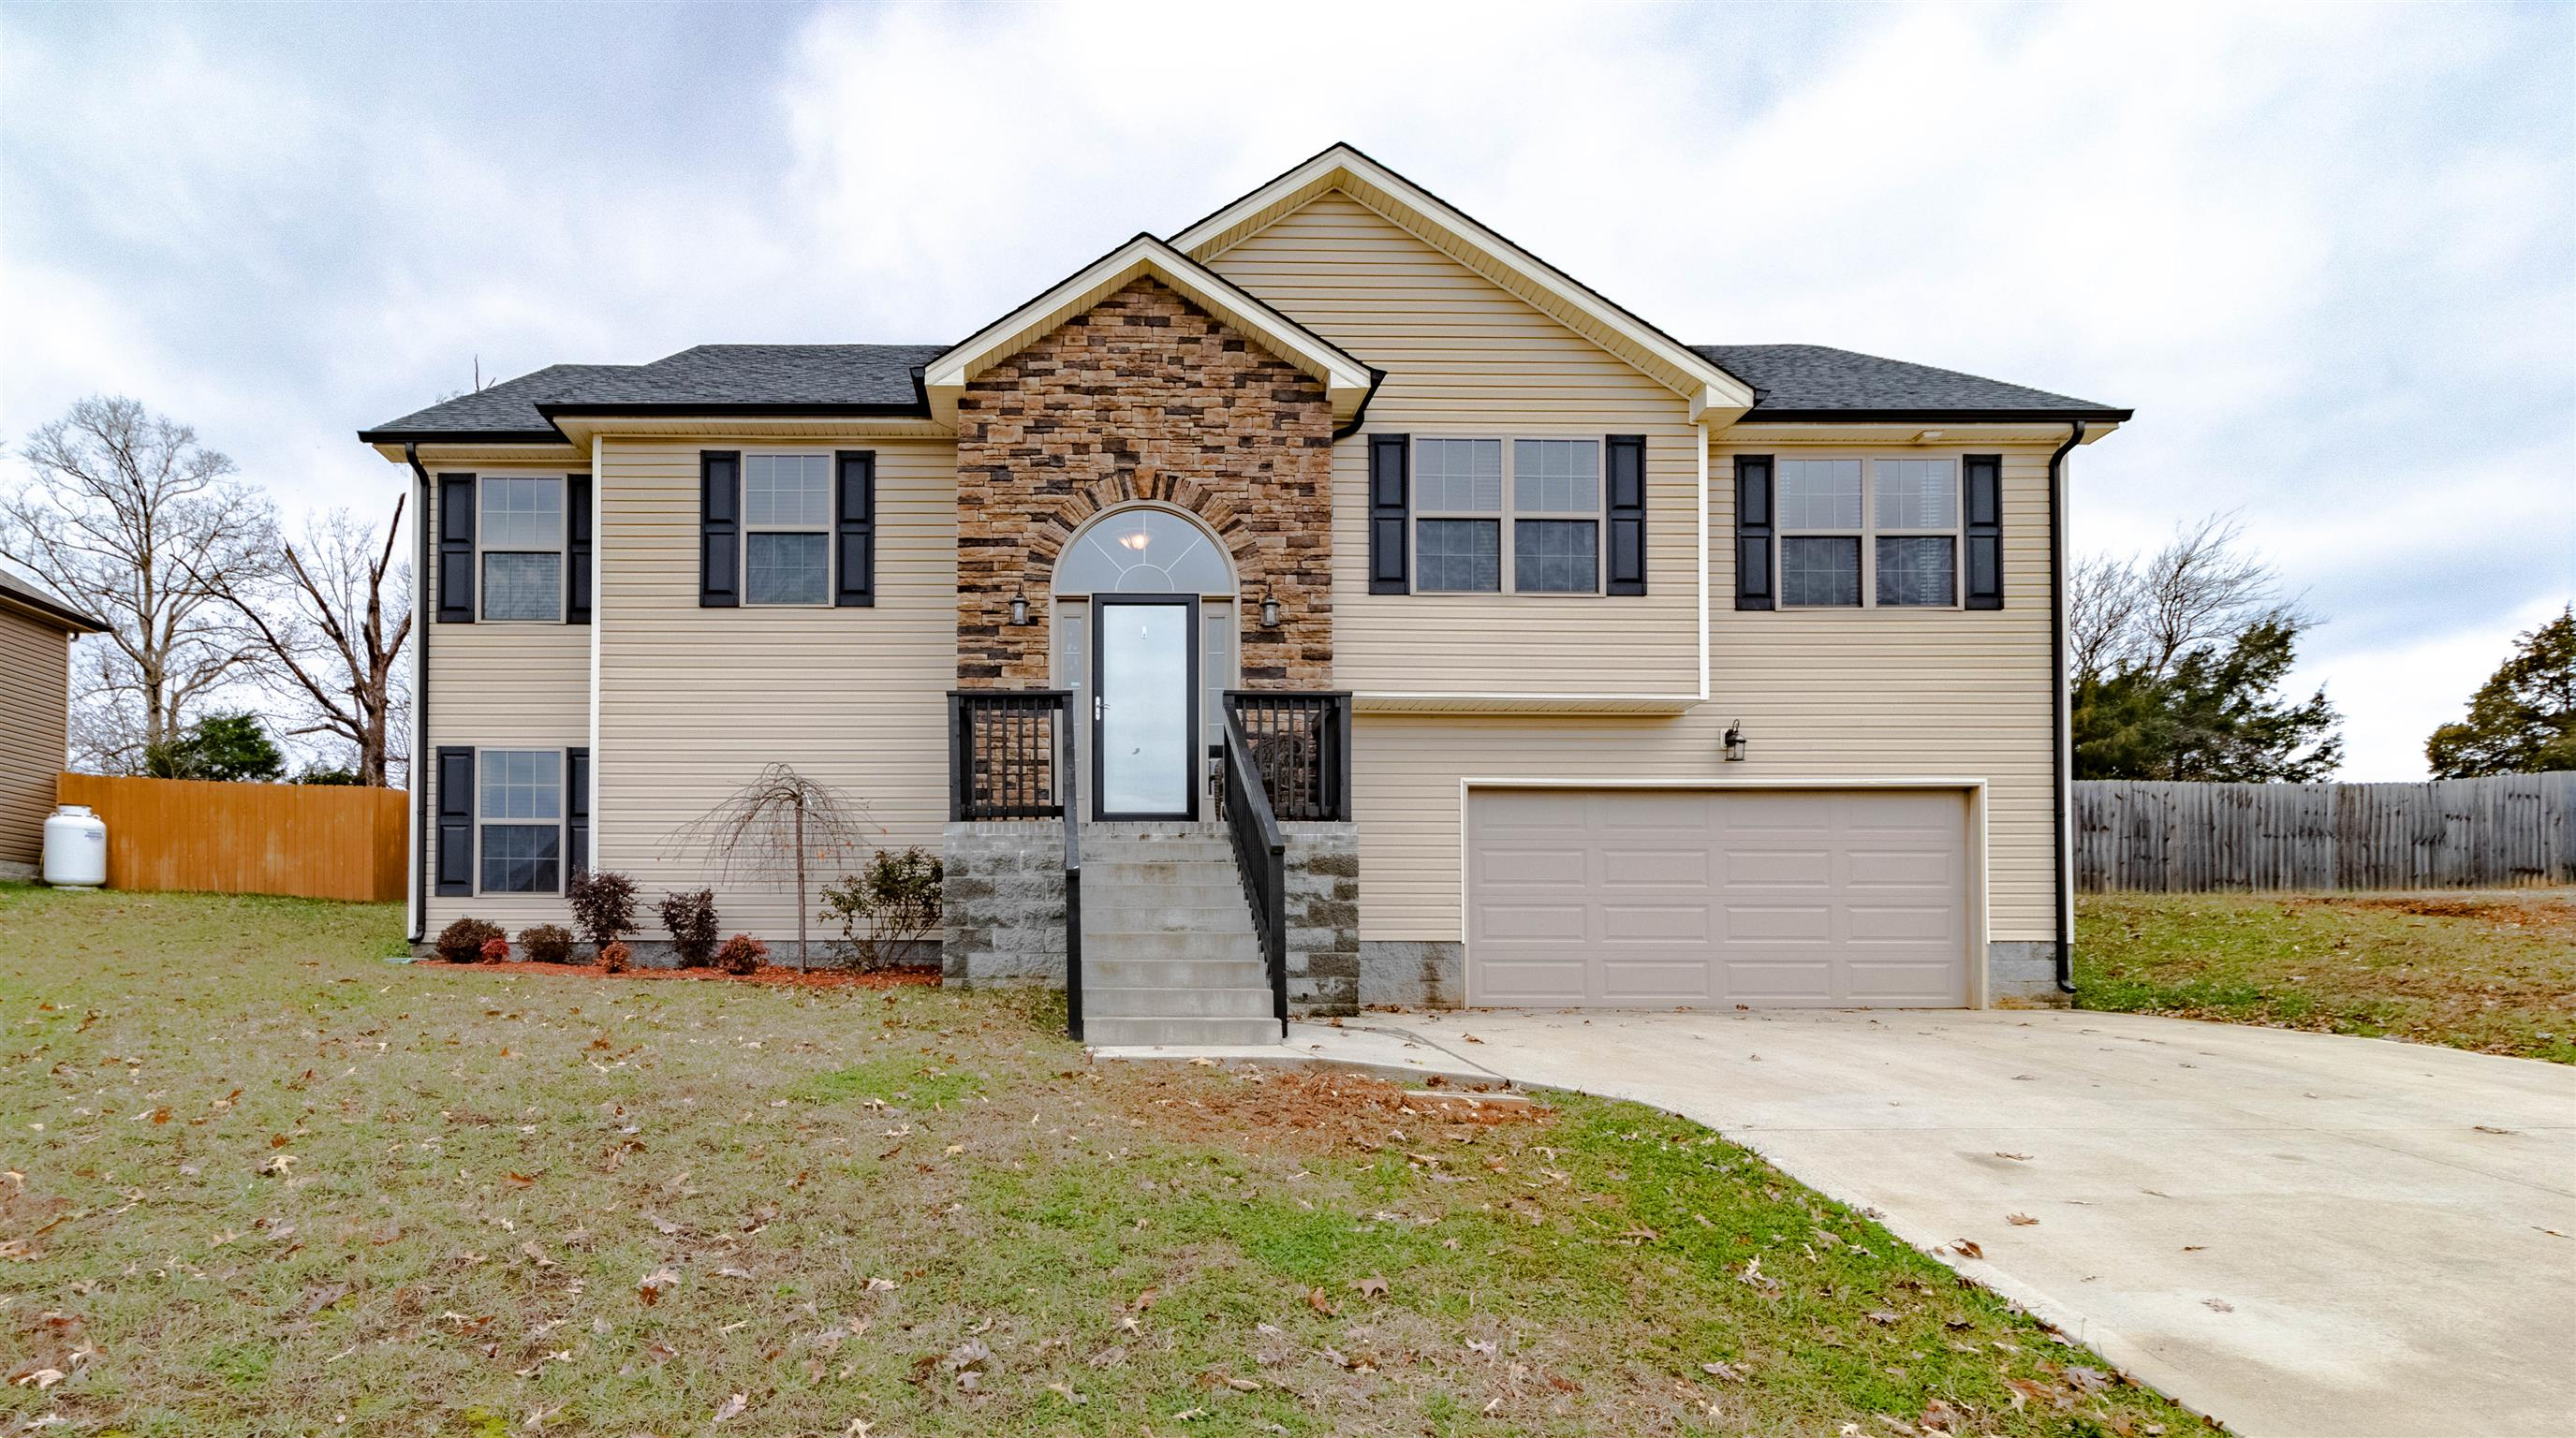 1084 Freedom Dr, Clarksville, Tennessee